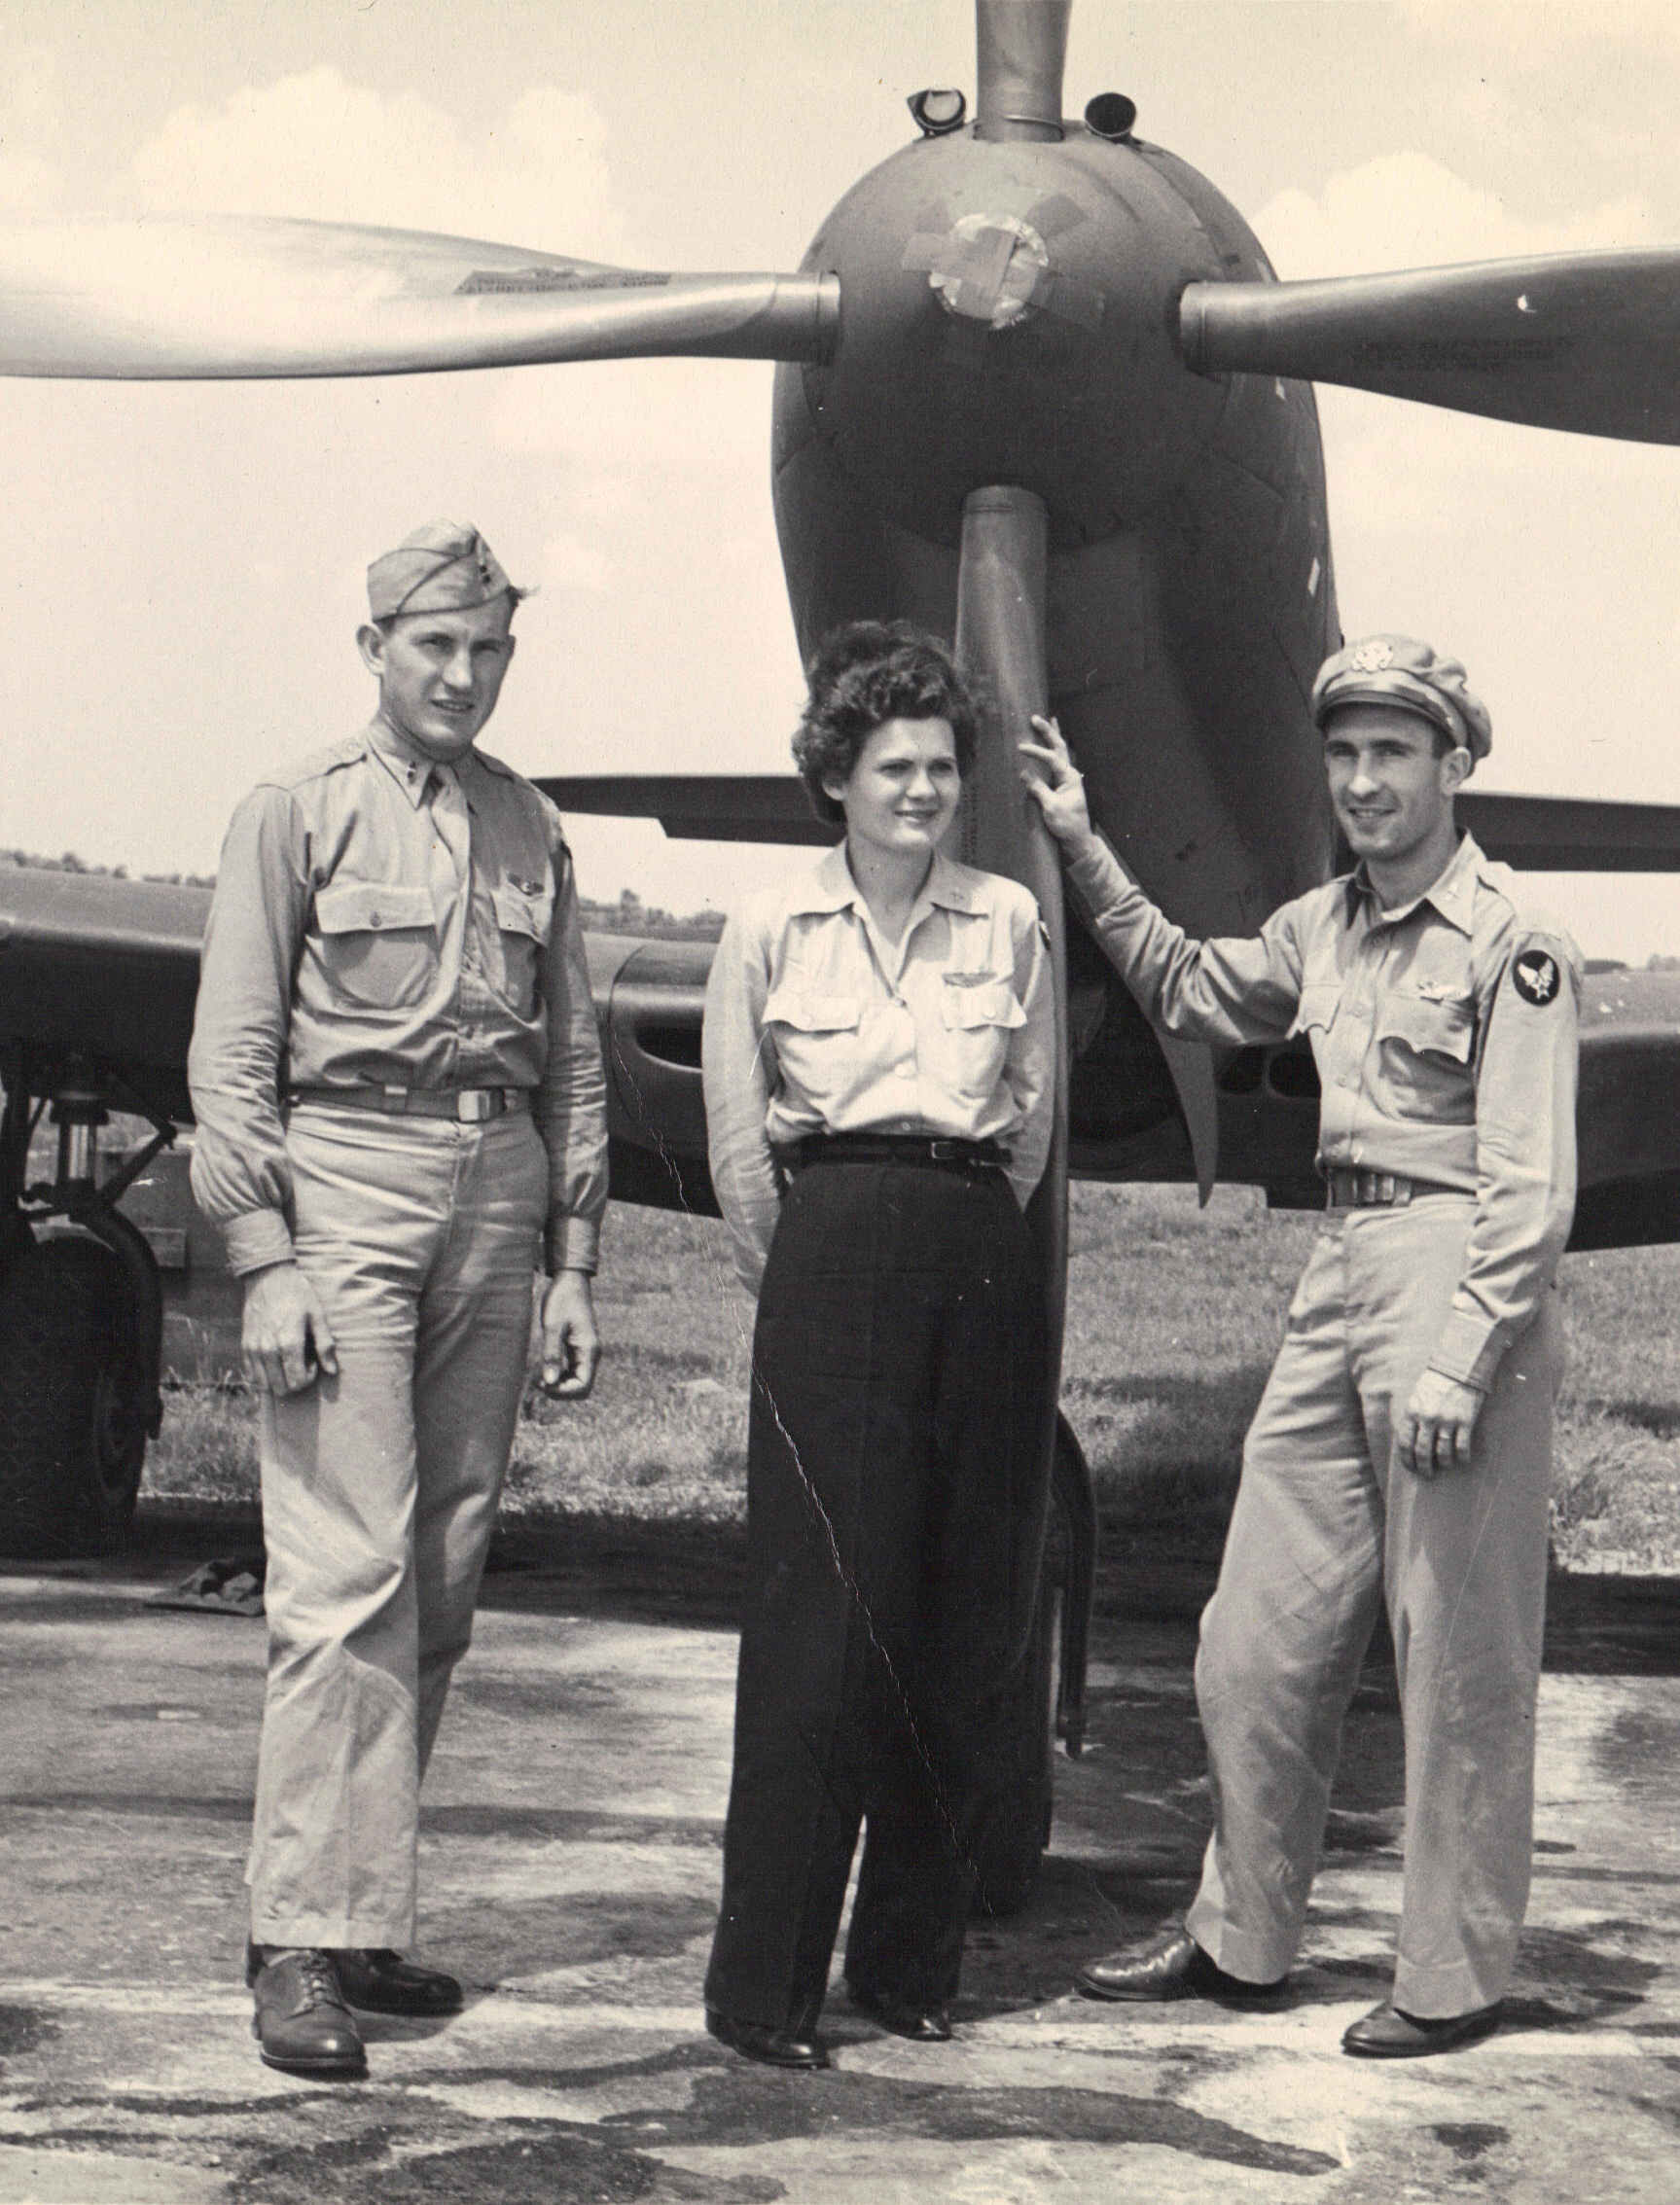 Ruth Helm with other pilots of P-63 portrait